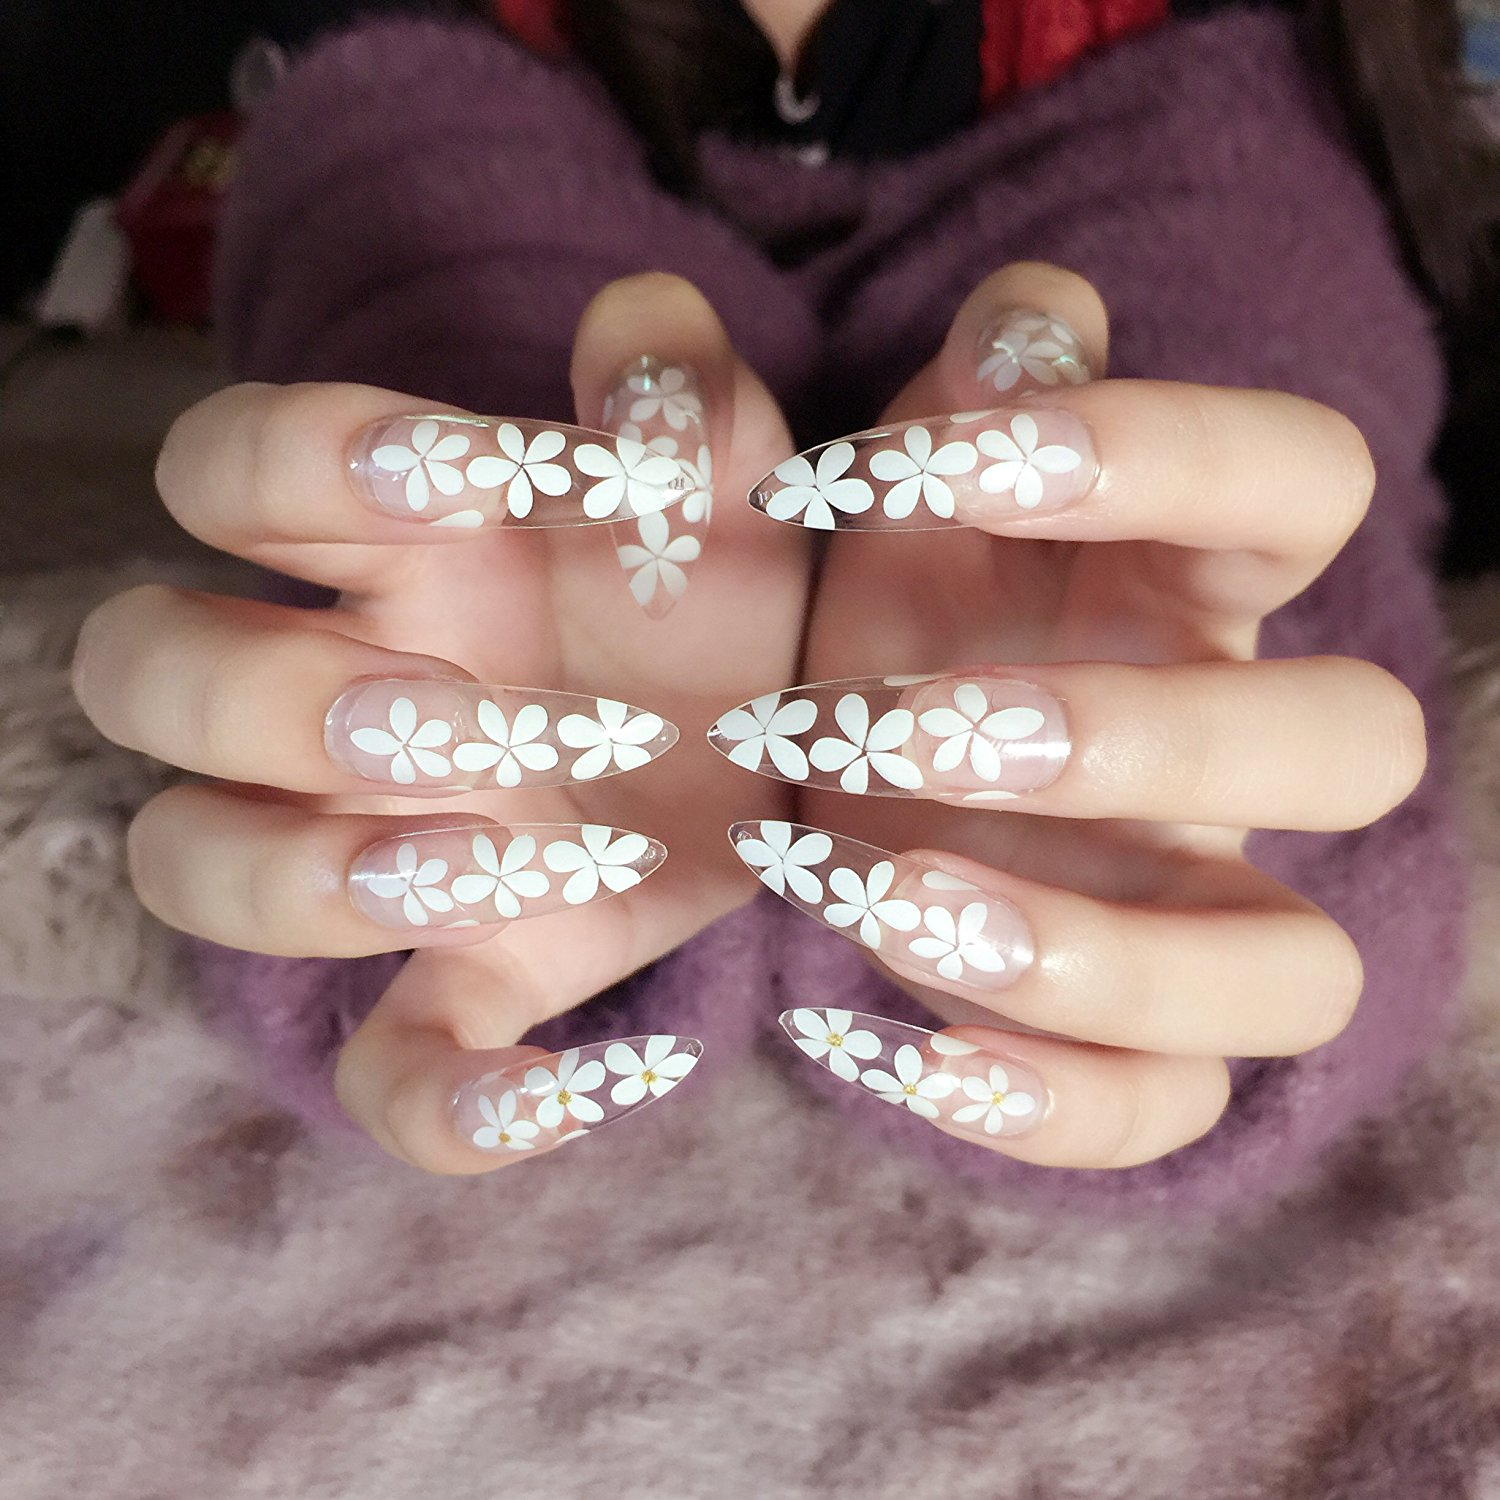 Cheap Flowers Nails Art Find Flowers Nails Art Deals On Line At Alibaba Com